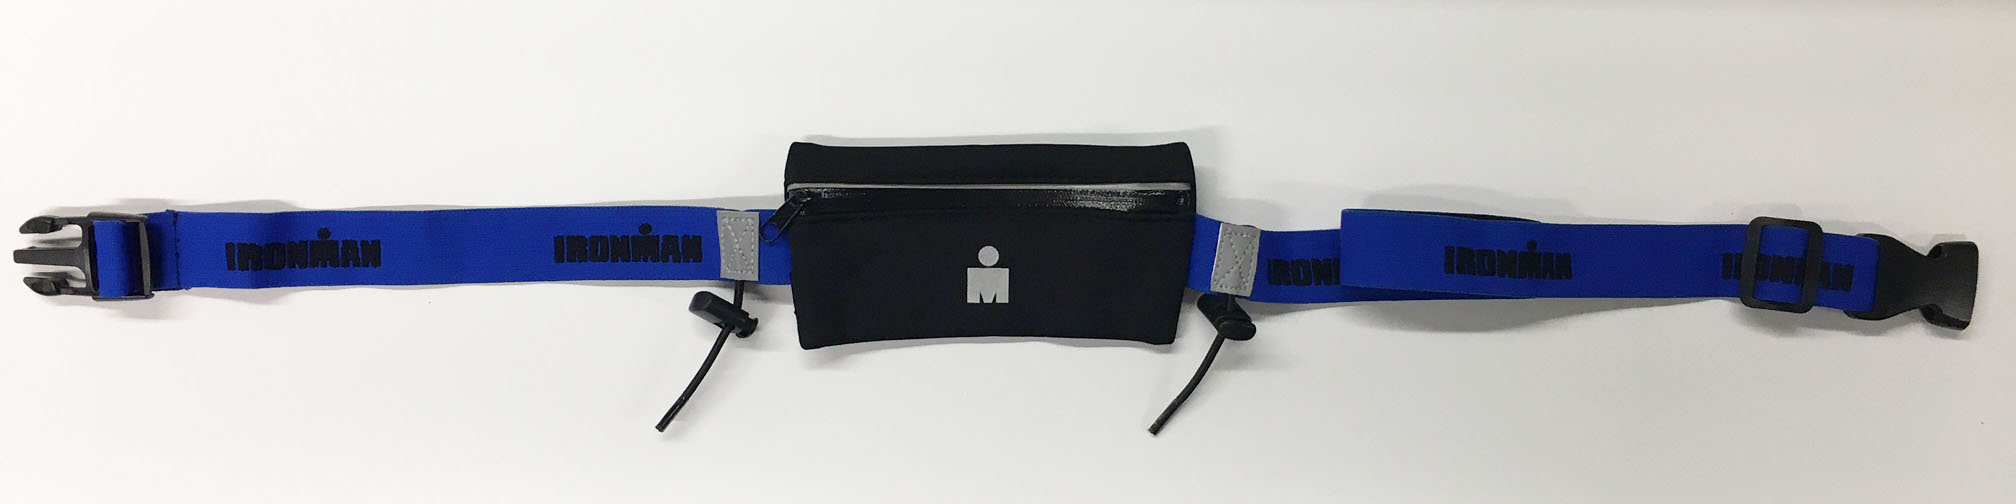 IRONMAN Zip Pouch Race Belt